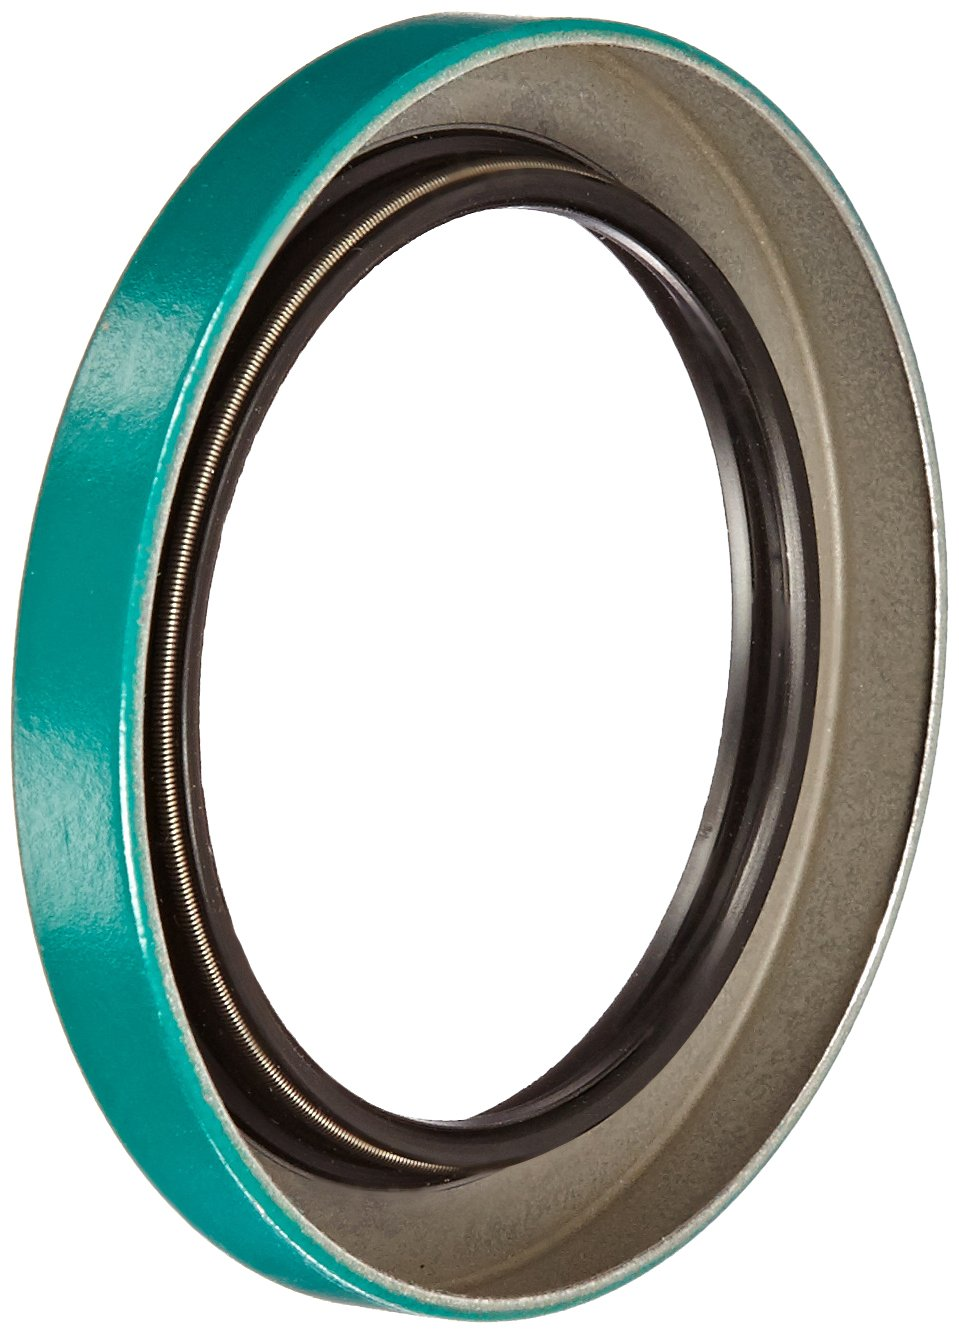 SKF 21759 LDS & Small Bore Seal, R Lip Code, CRWA1 Style, Inch, 2.188